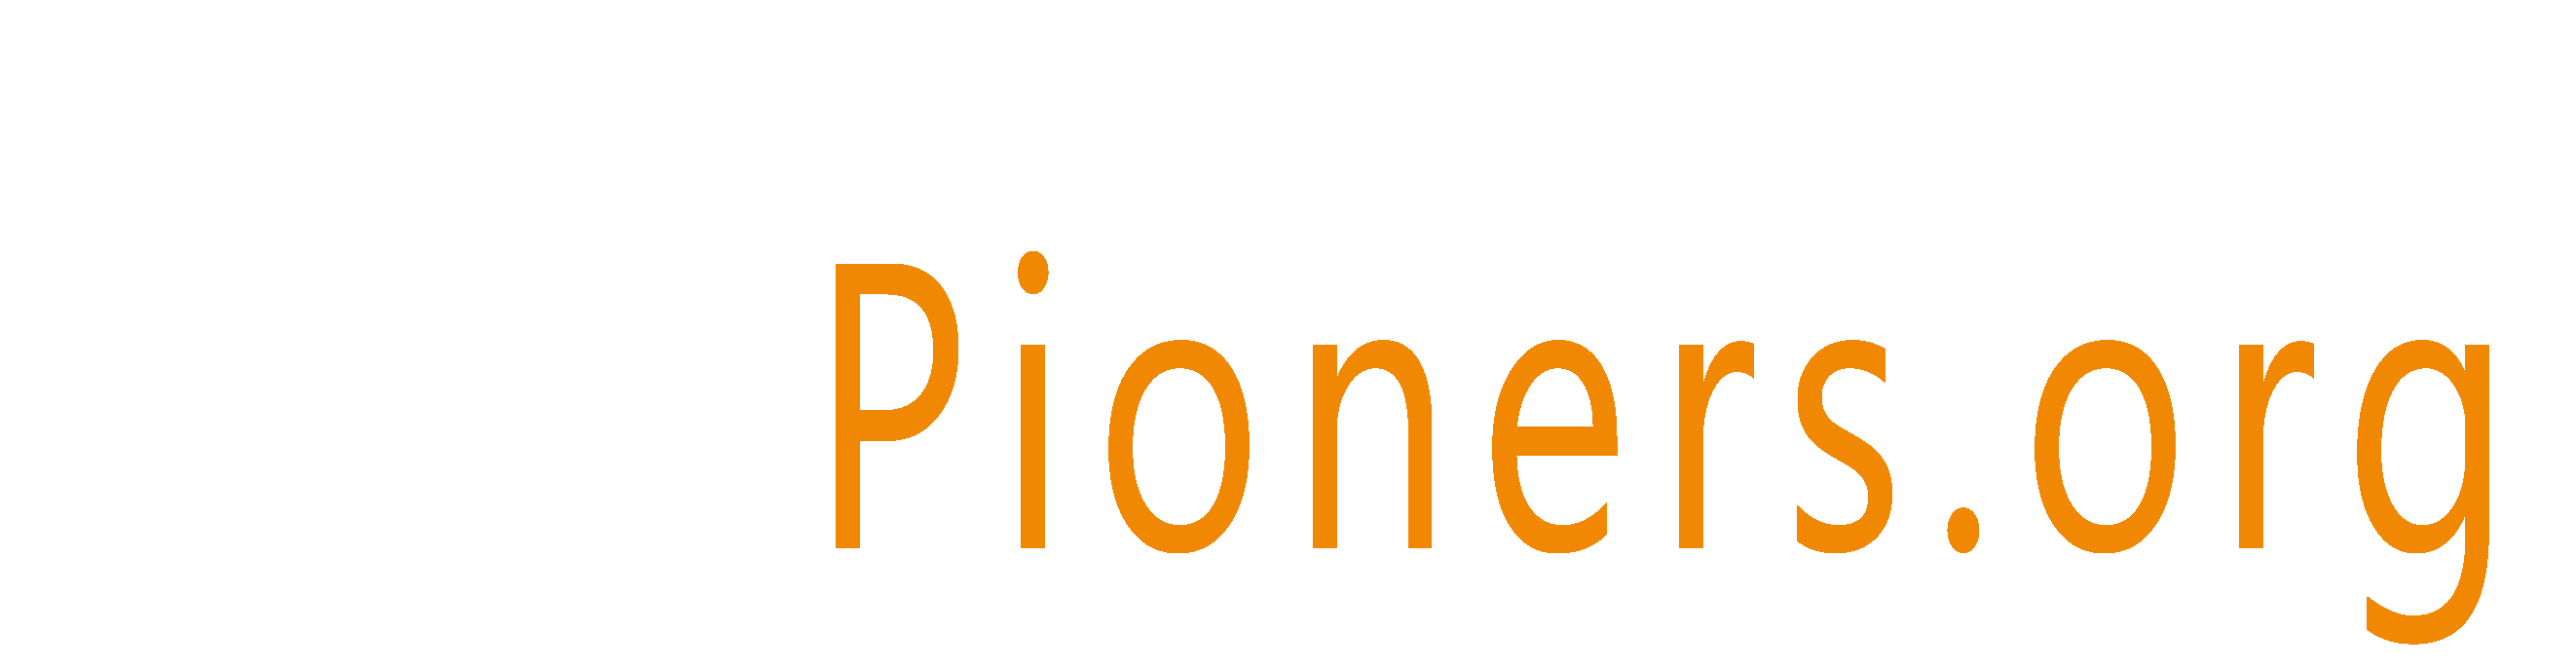 pioners.org